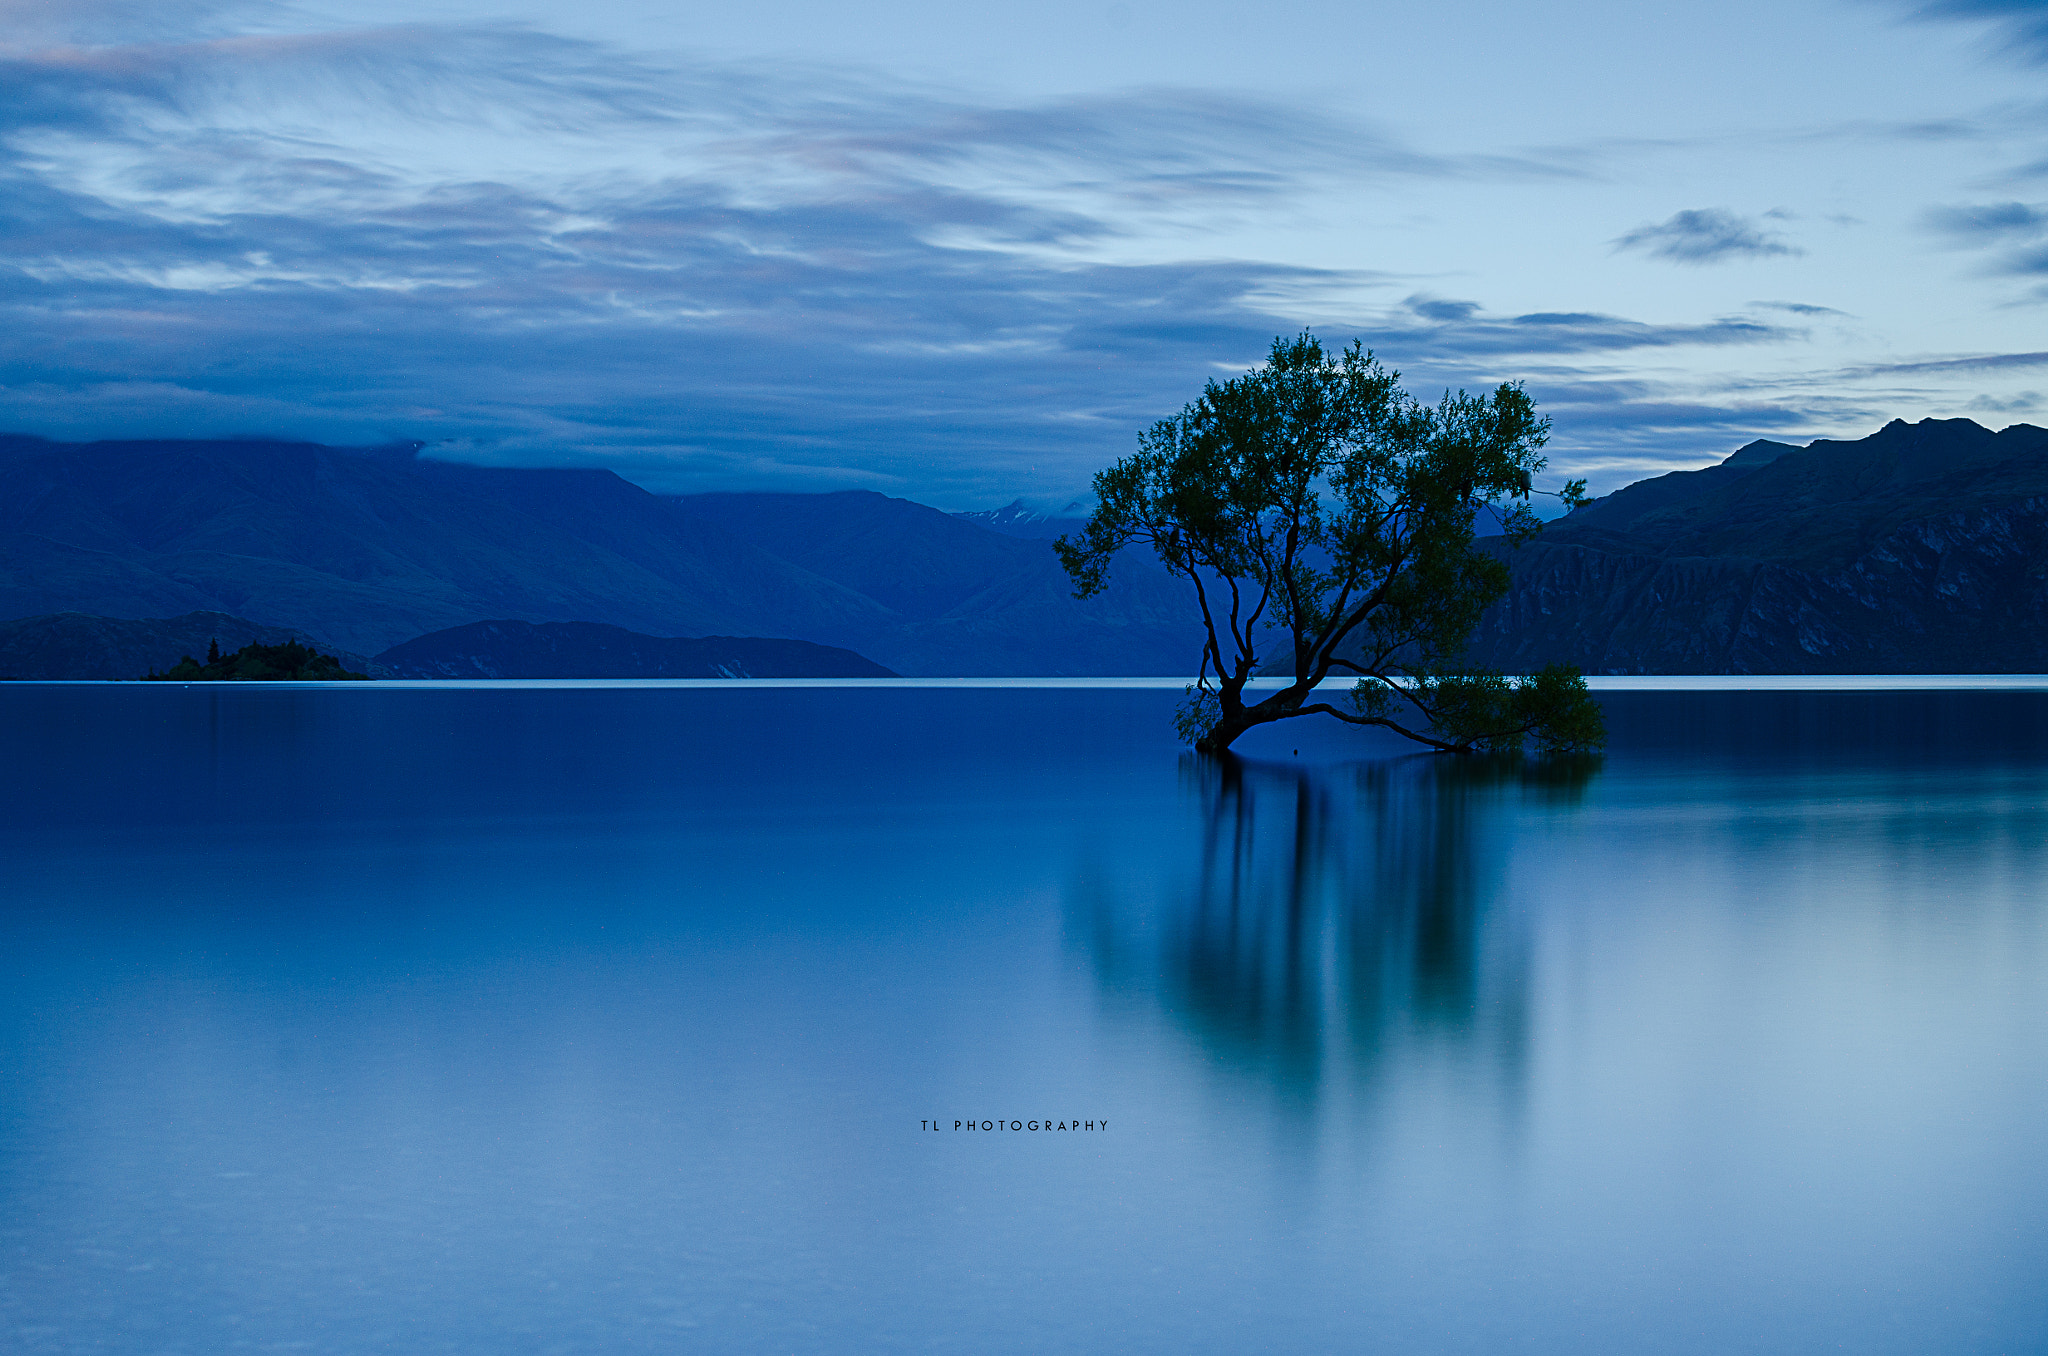 Photograph The Willow Tree by Tony Lim on 500px